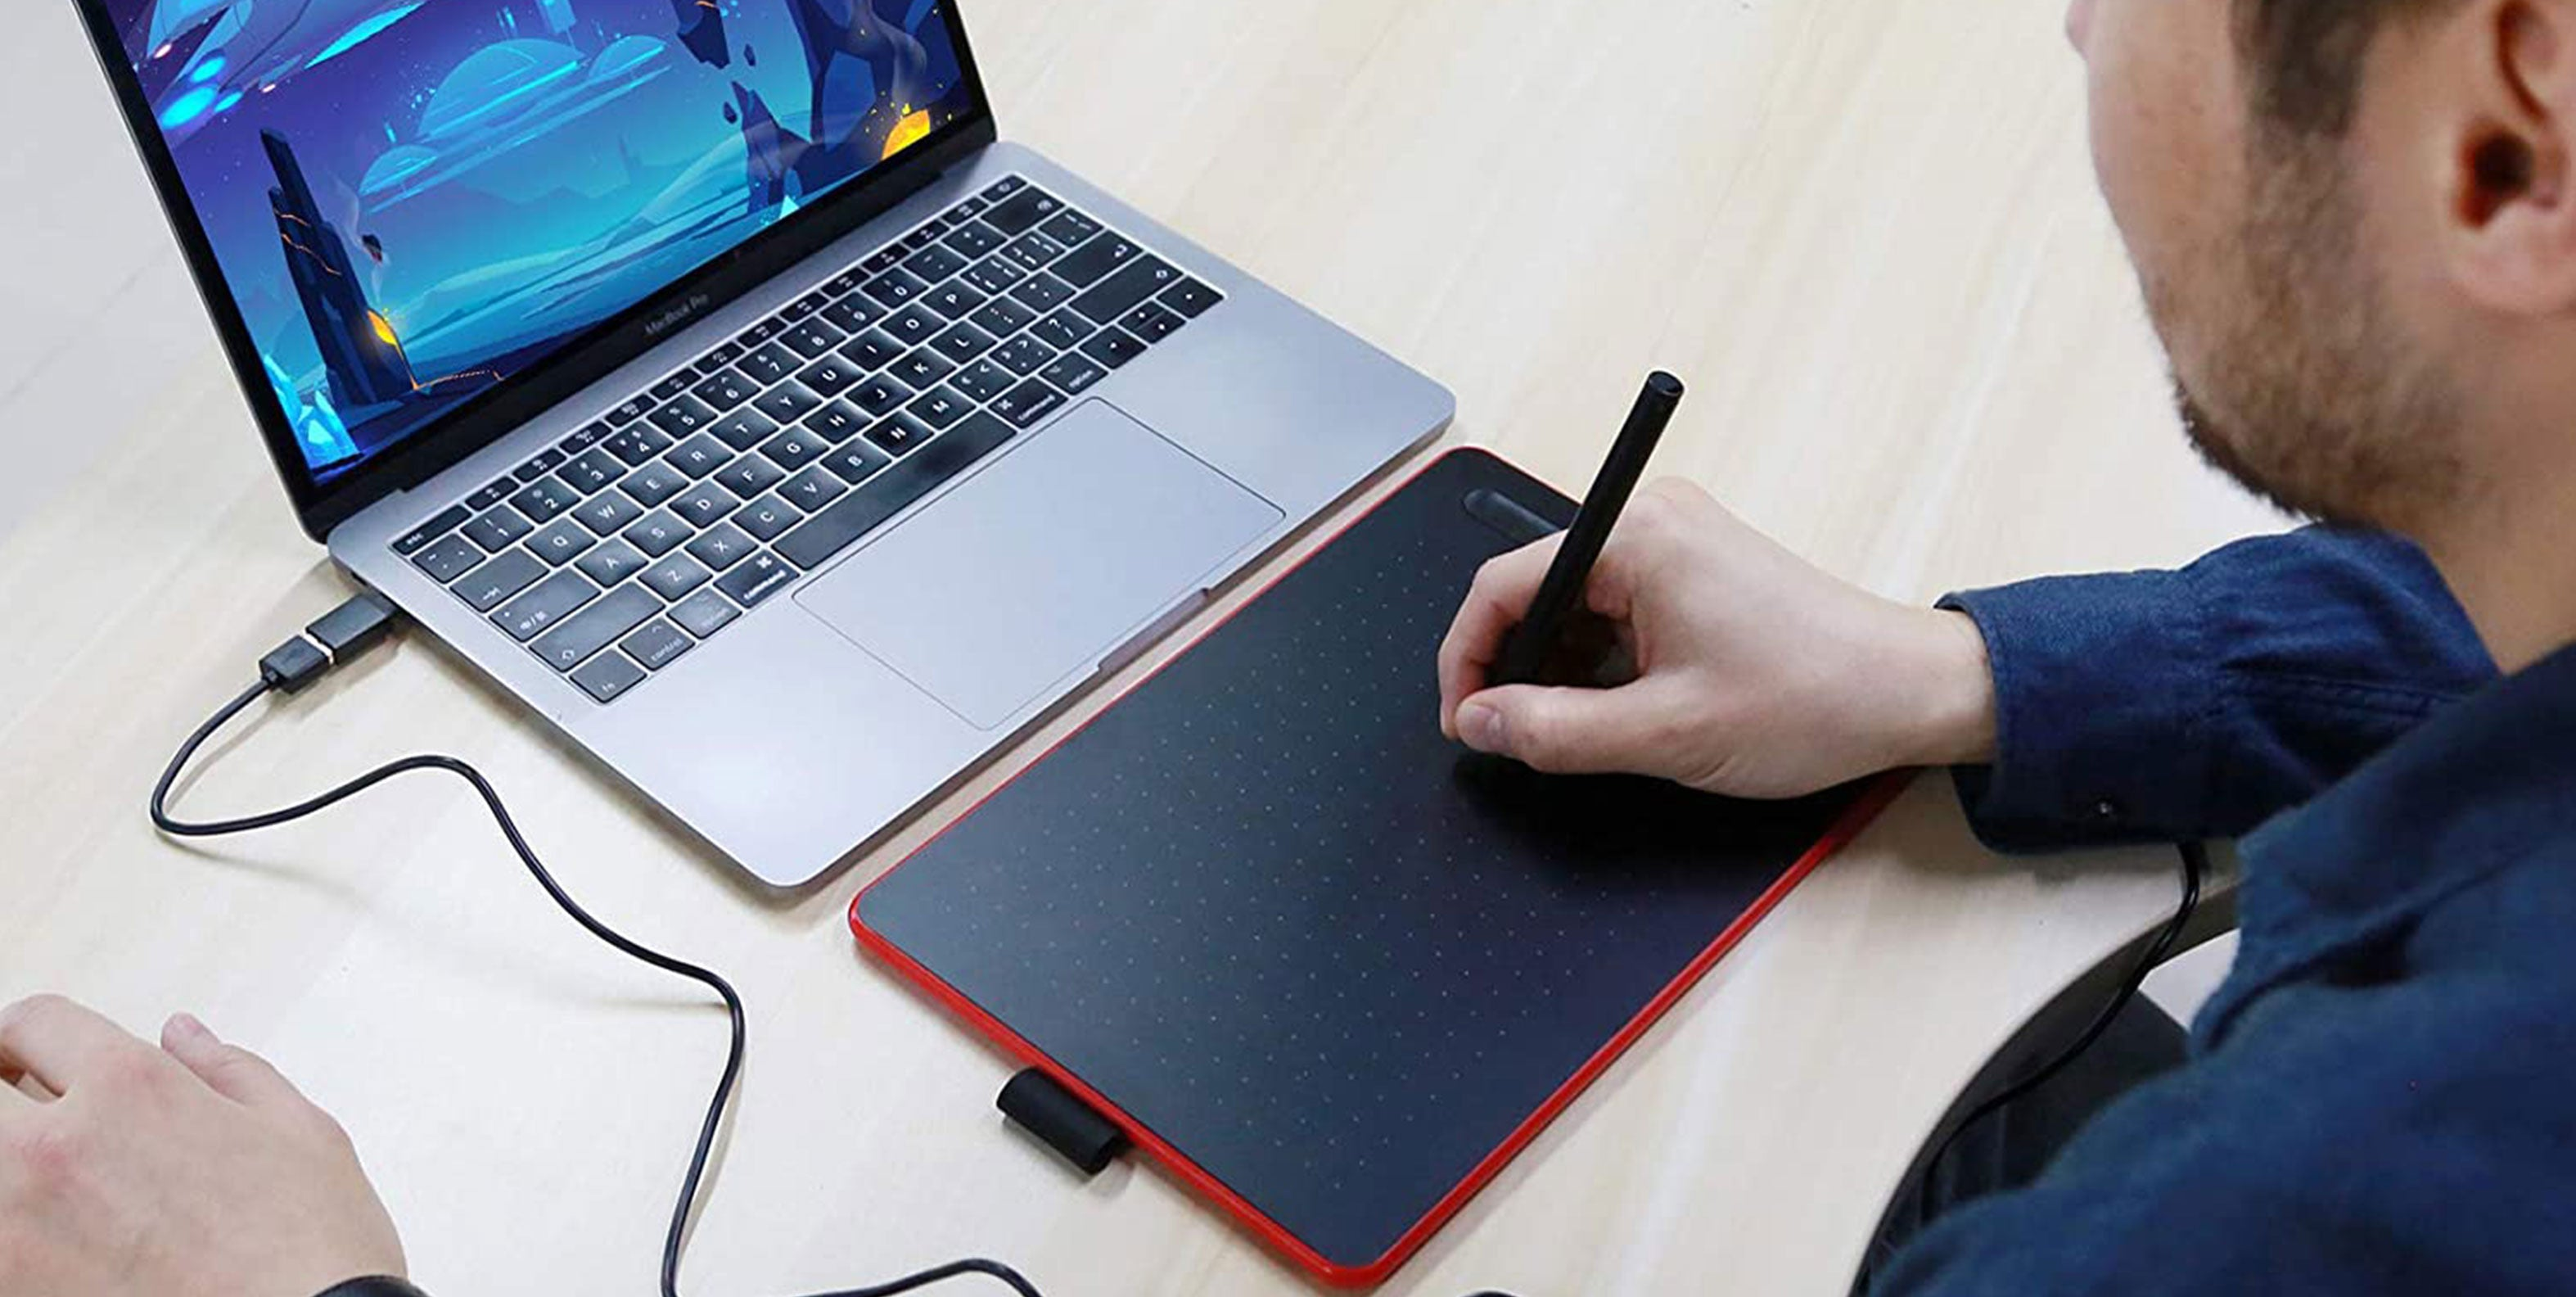 CASE U Graphic Tablet for online learning